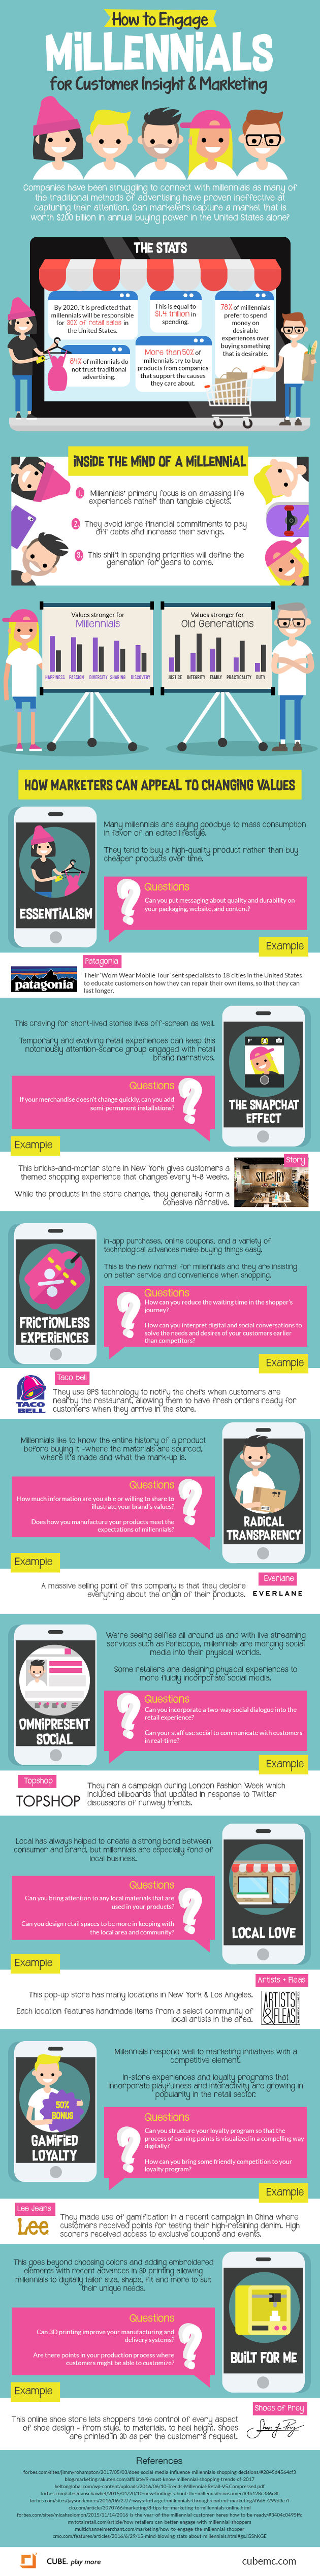 How To Engage Millennials for Custoomer Insight and Marketing [Infographic]